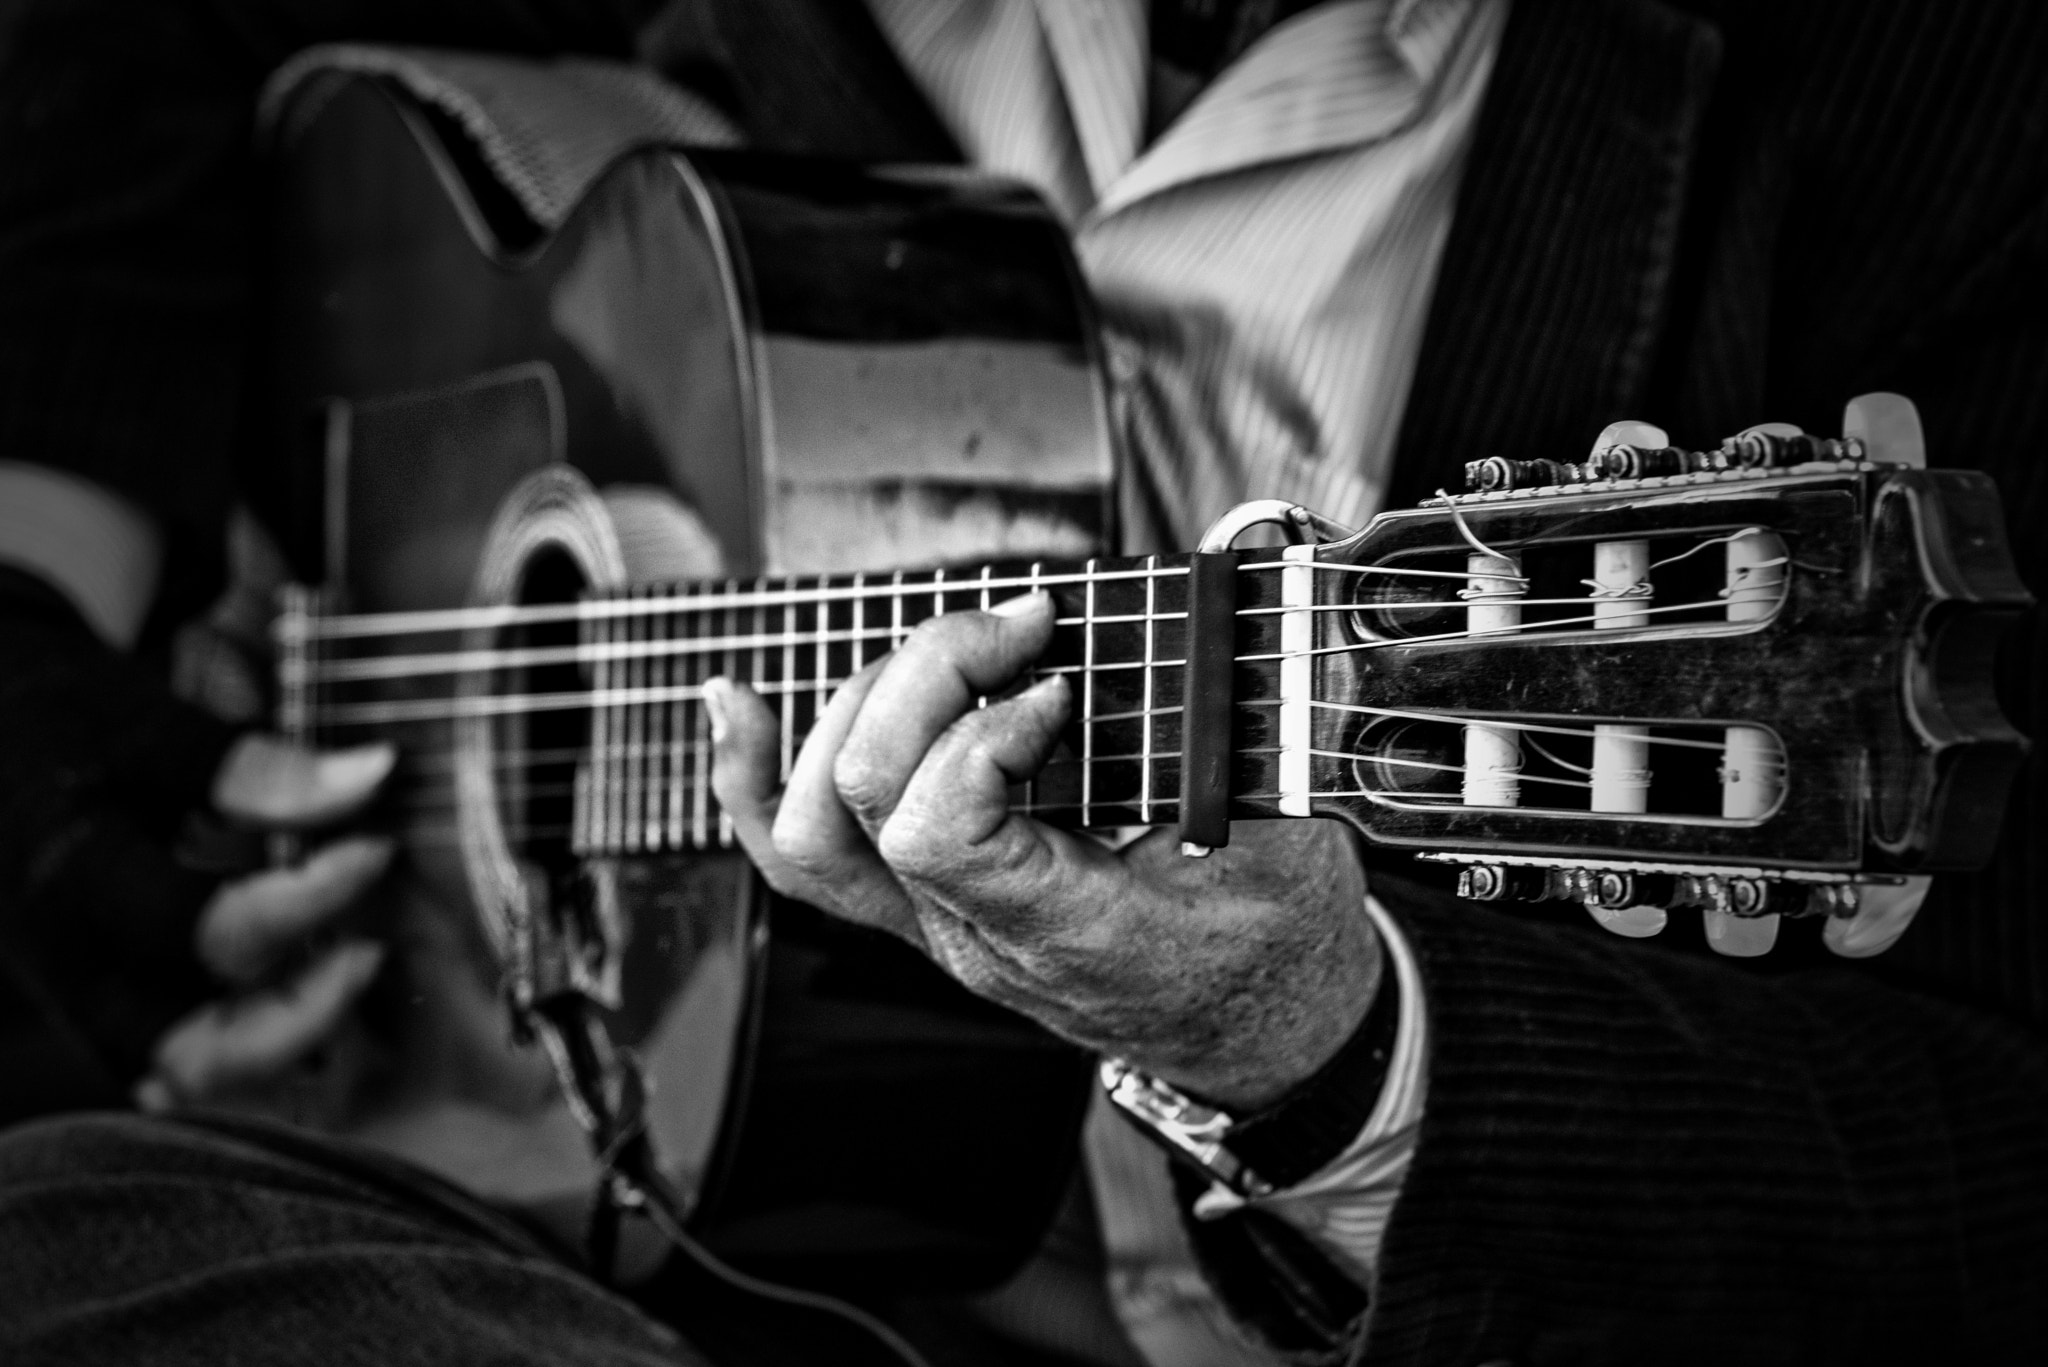 Photograph Playing the guitar in Seville by Paco López on 500px